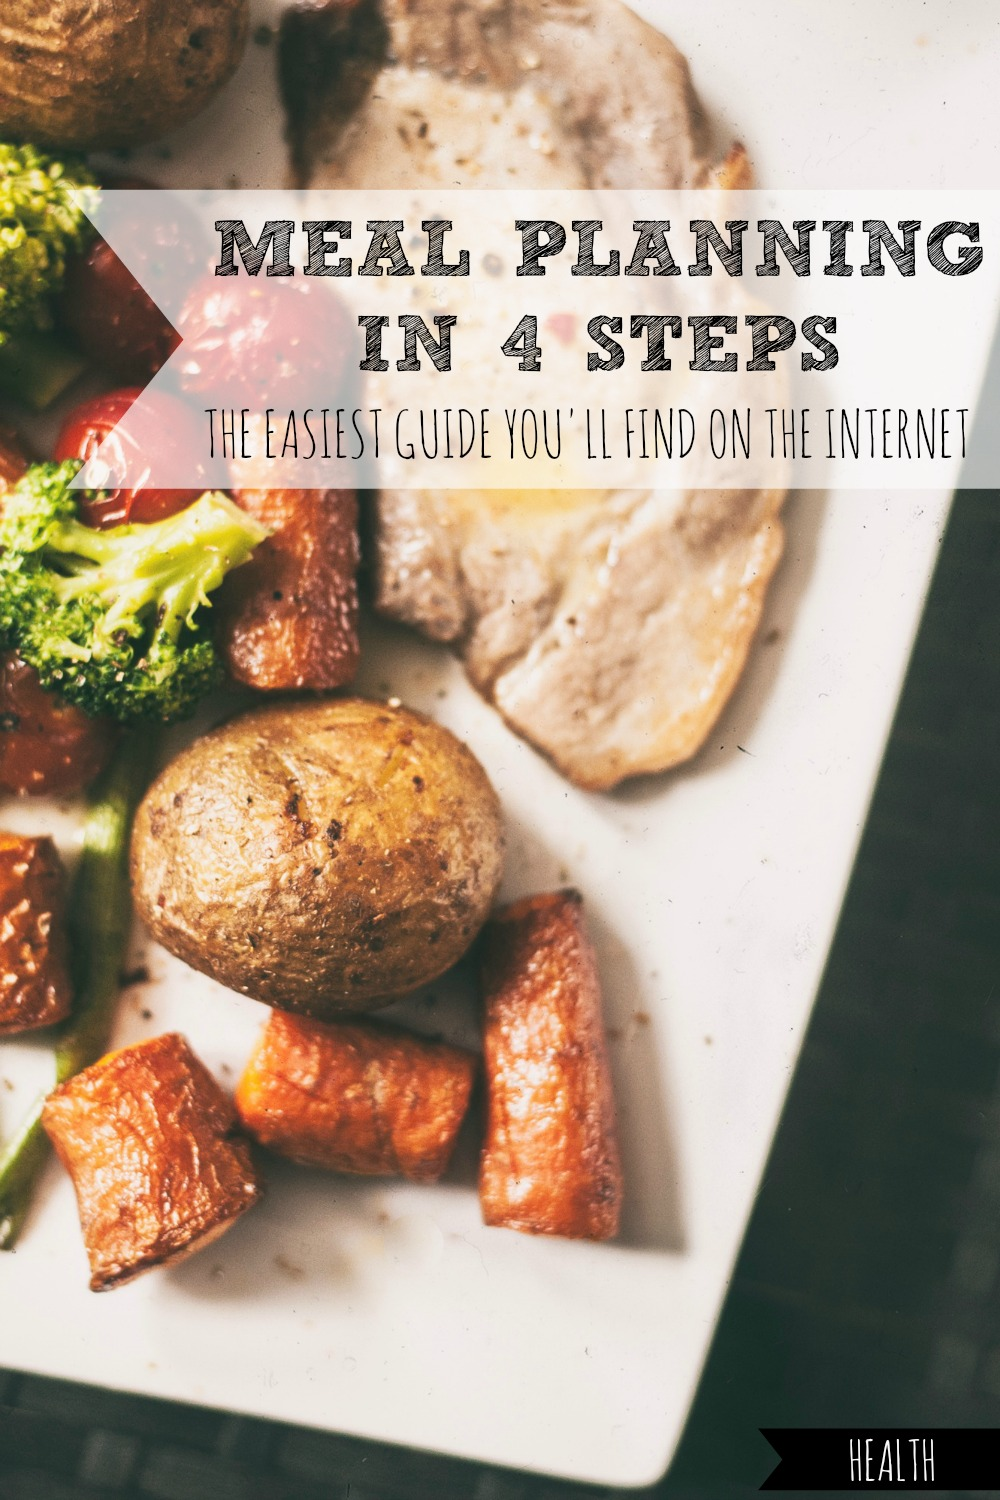 Does just the idea of meal planning make your palms sweat? Here's the easiest guide you'll find on the internet, with nothing too fancy or intimidating, that you can try TODAY! #meal #planning #easy #easiest #guide #guides #plan #plans #planner #waste #food